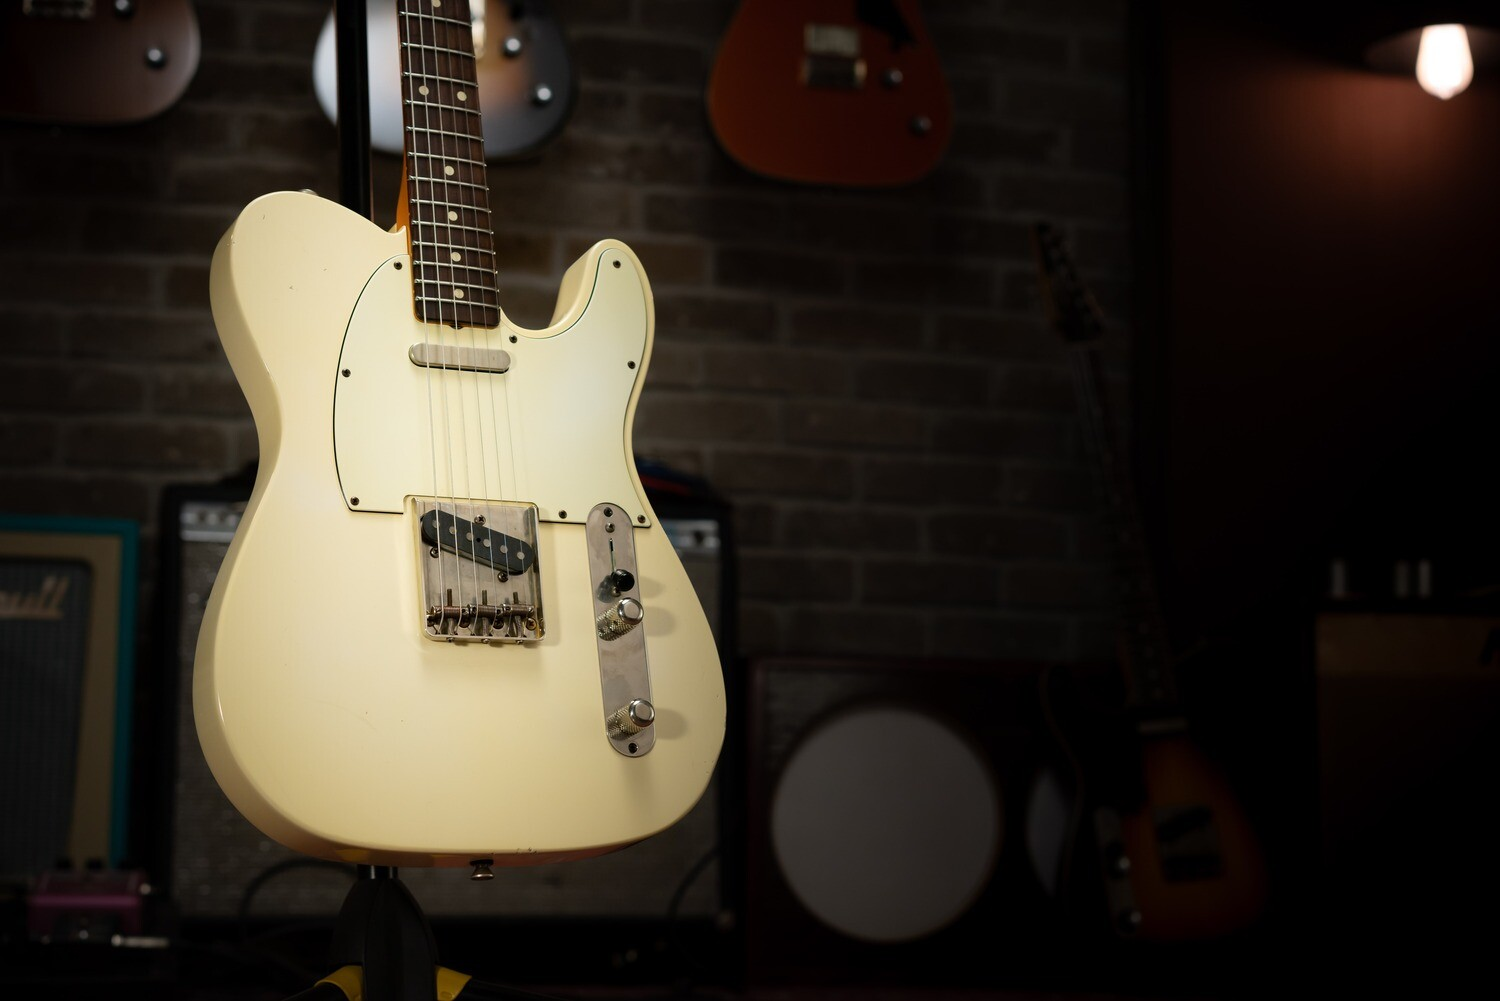 *Showroom/Demo Guitar* Macmull T-Classic, Aged White 3.32kg / 7.32lbs